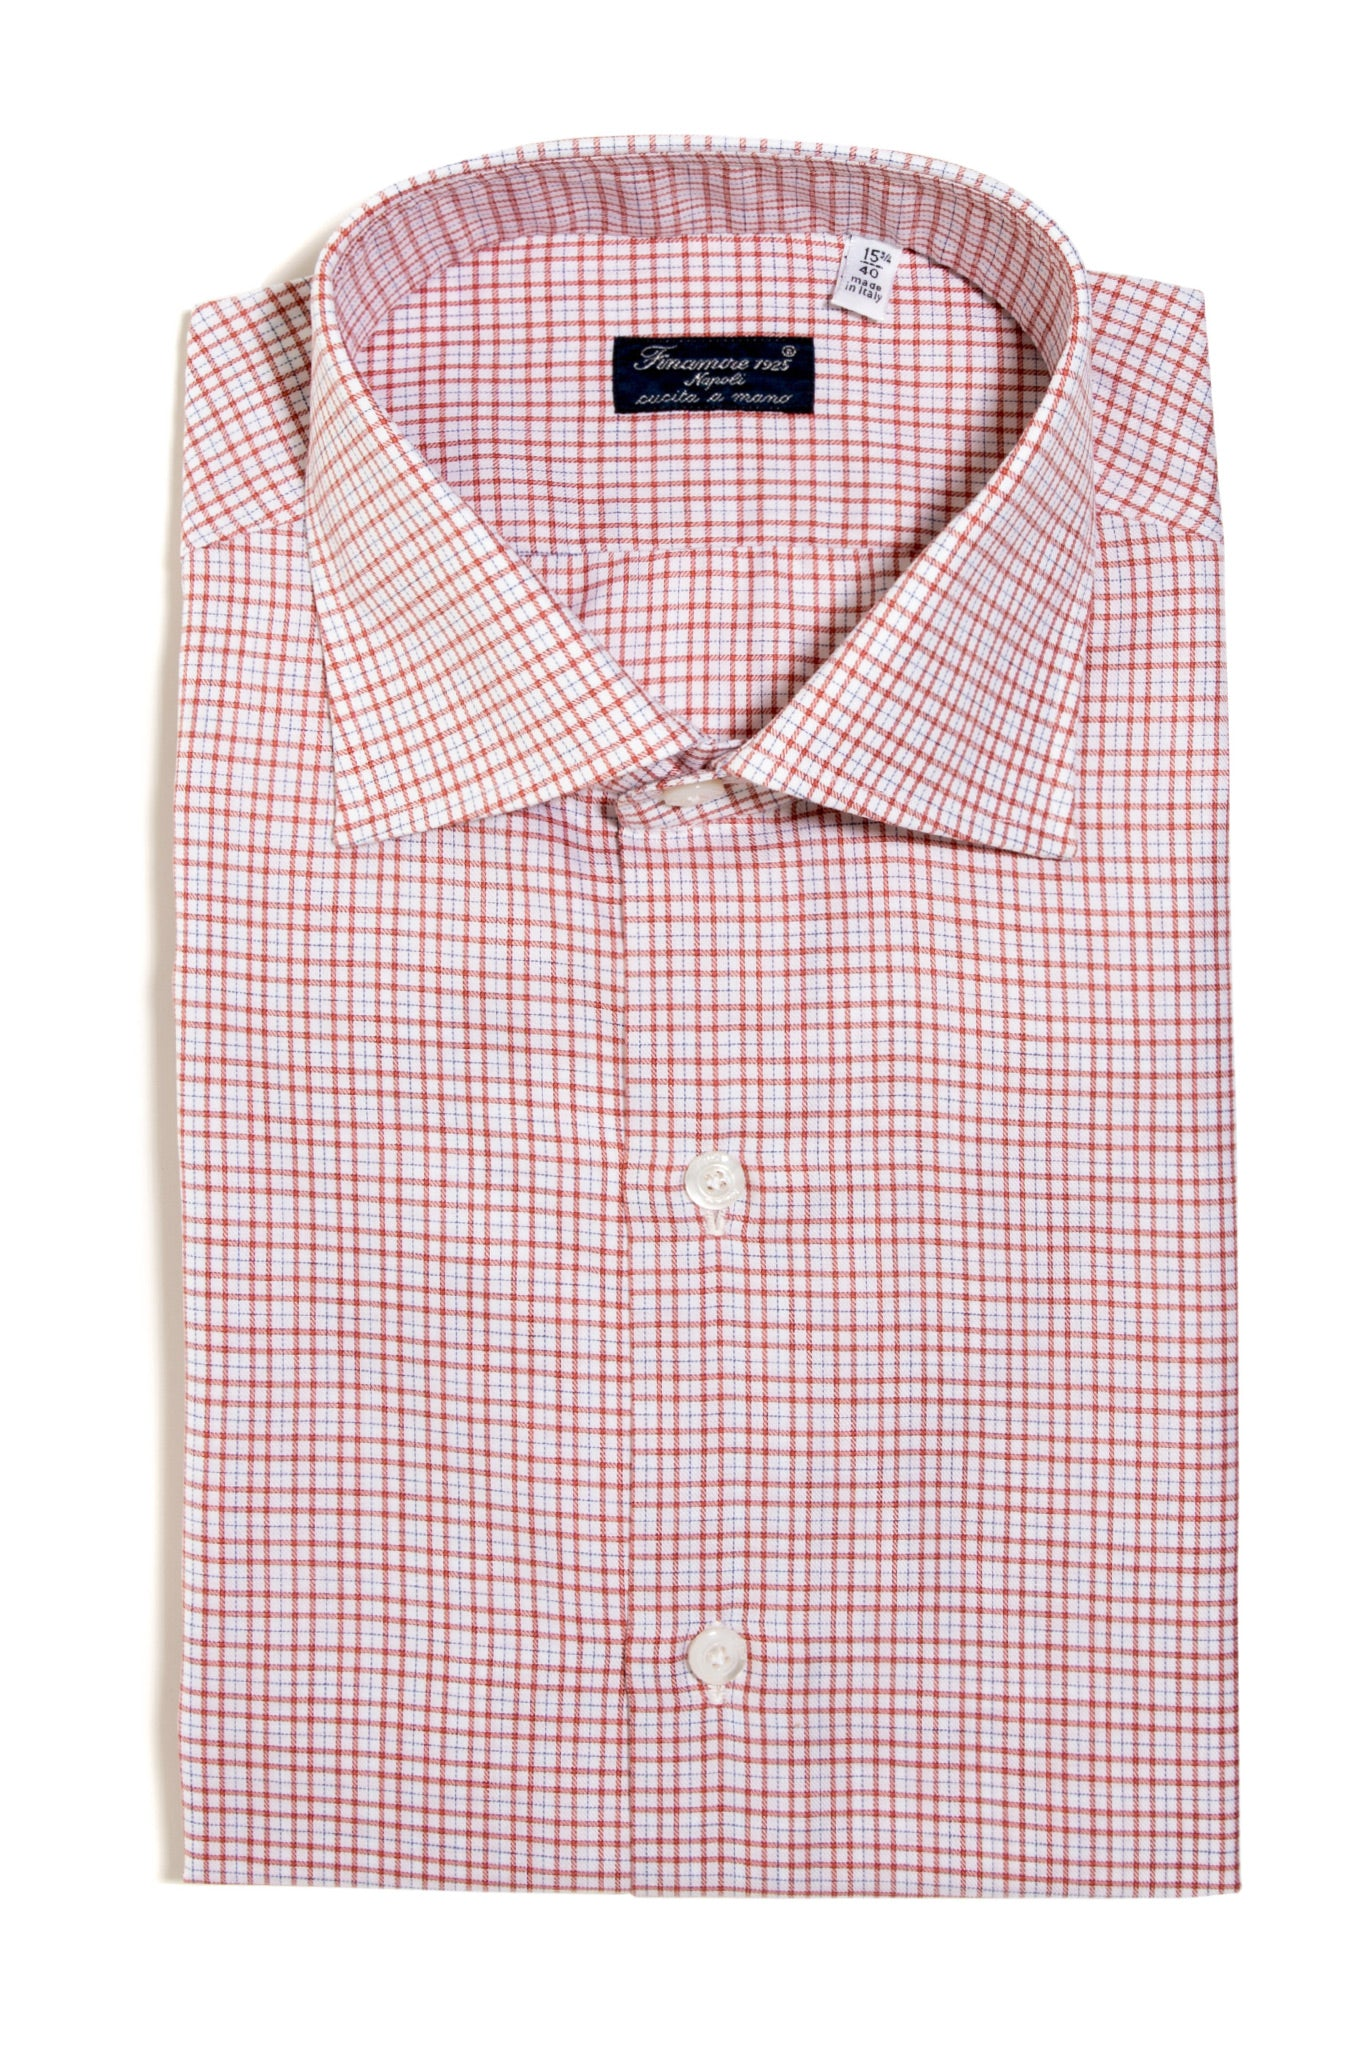 Finamore Guareschi Twill Dress Shirt (147440500760)